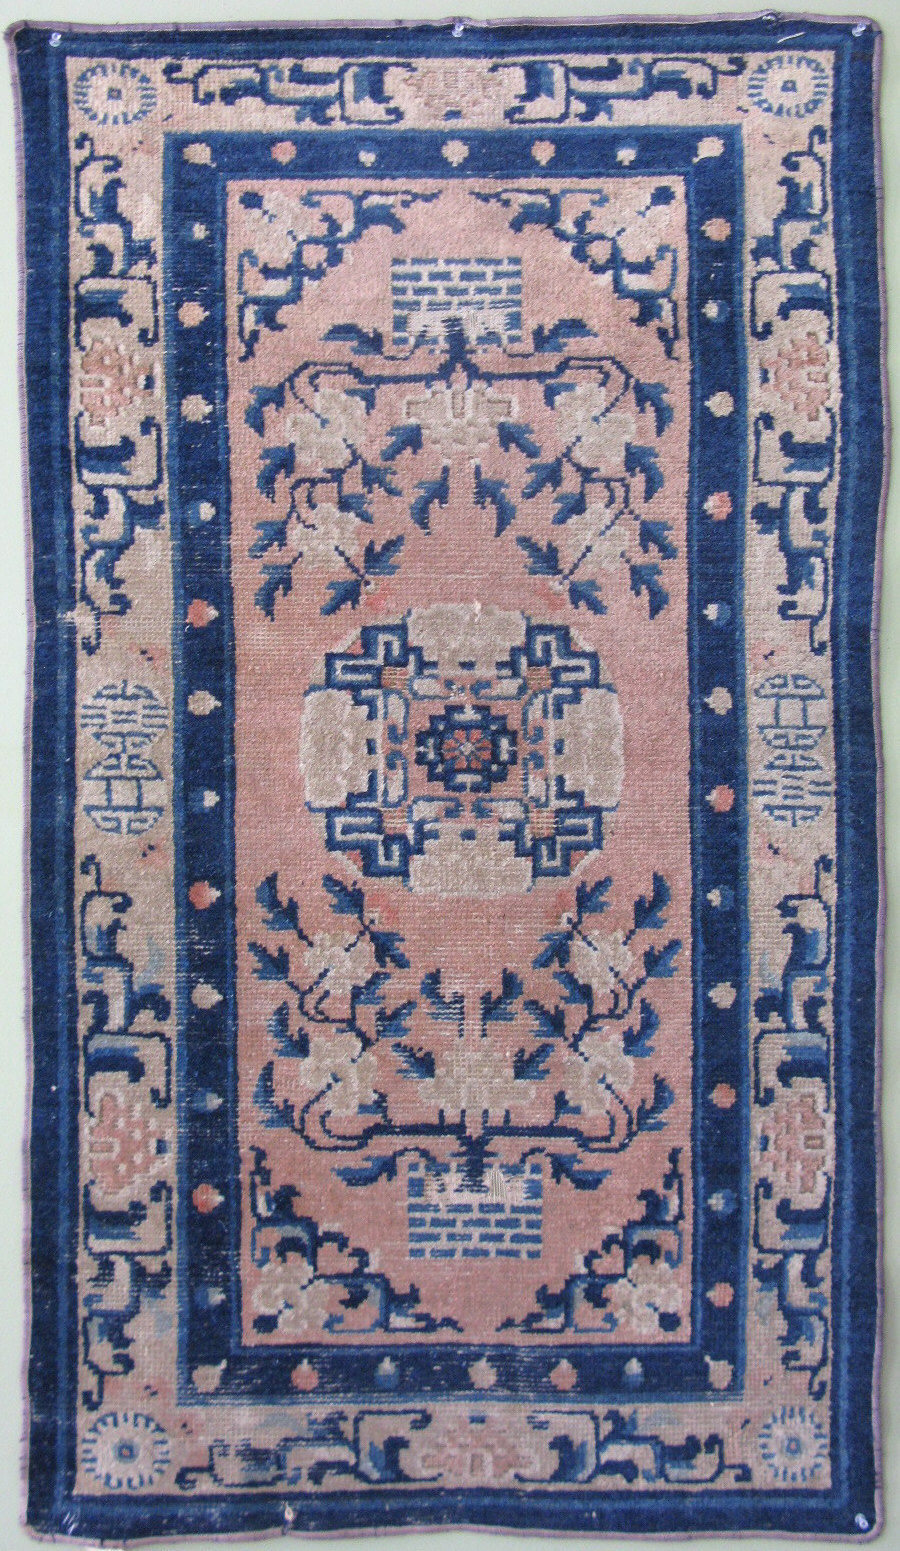 2'8 x 4'9 Hand-knotted Wool Antique Chinese Art Deco Ningxia Ninghsia 19thC Qing Dynasty Rug 12980490 (1)